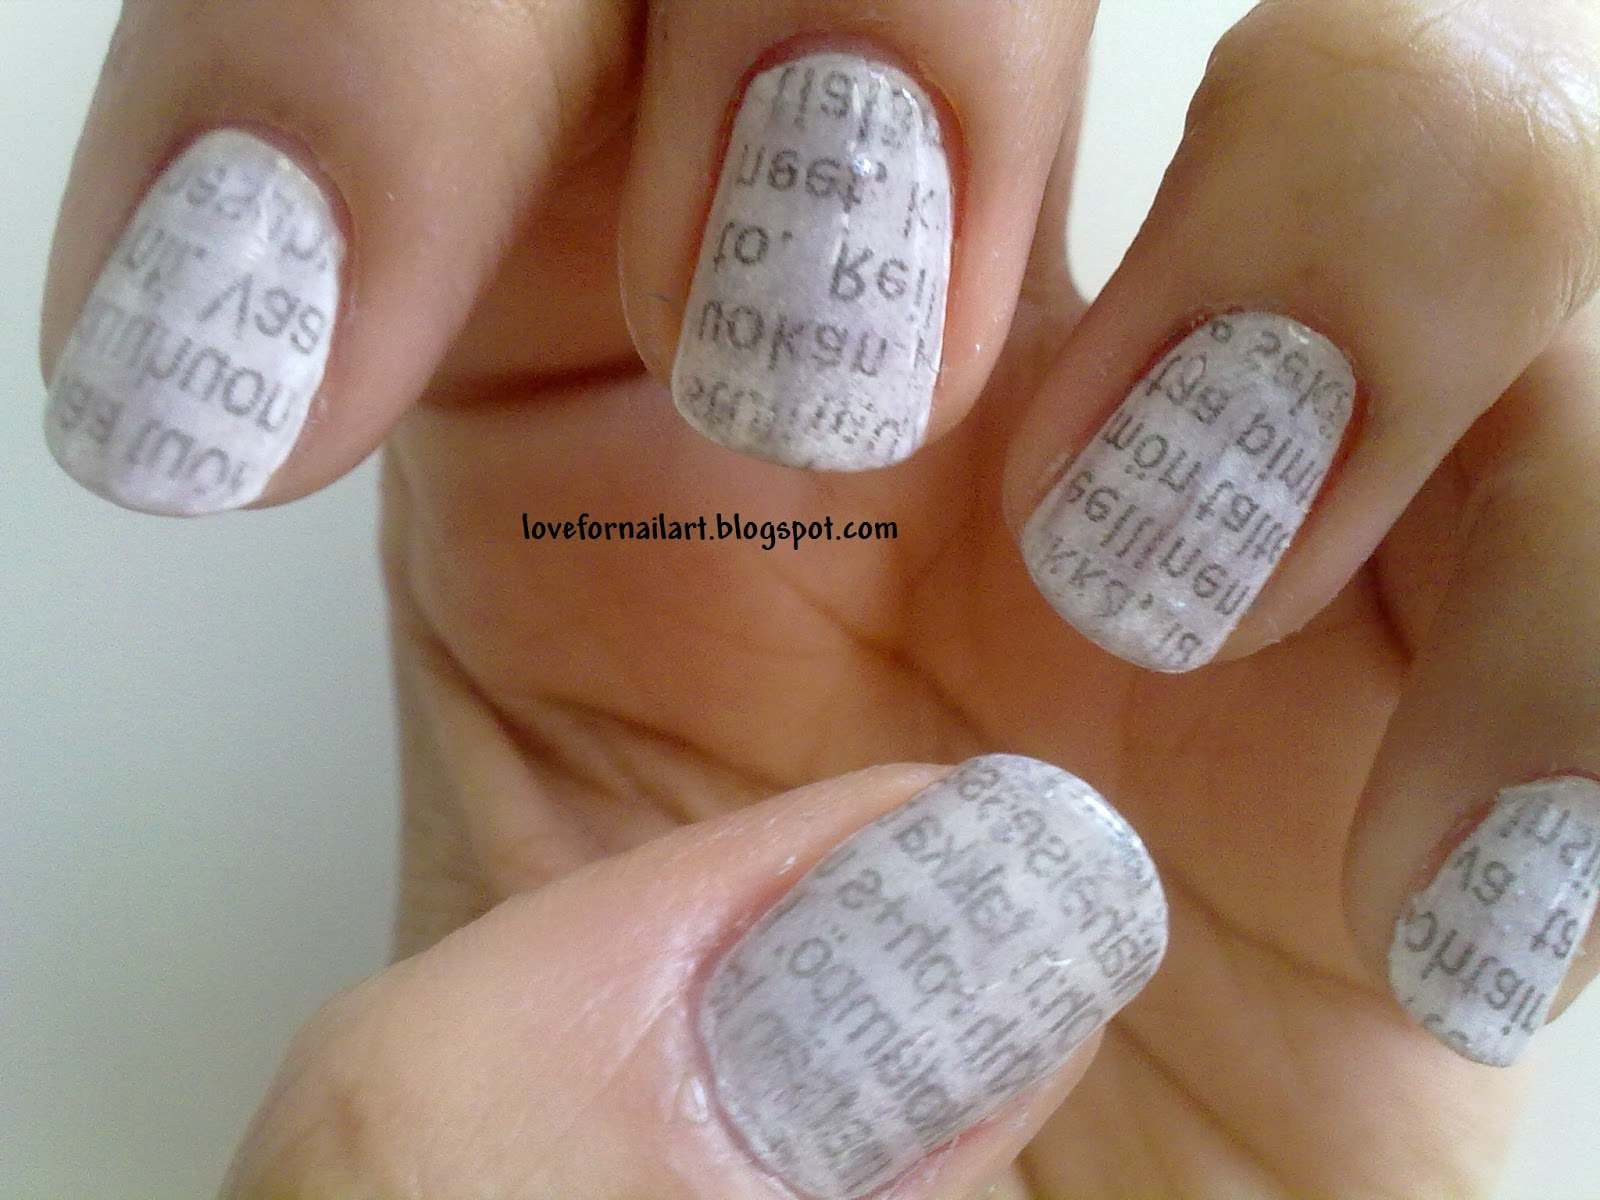 Newspaper Nail Art It Was Requested By One Of My Friend On Facebook Page Is Easy To Get This Look And Hope You Enjoy Doing Your Nails